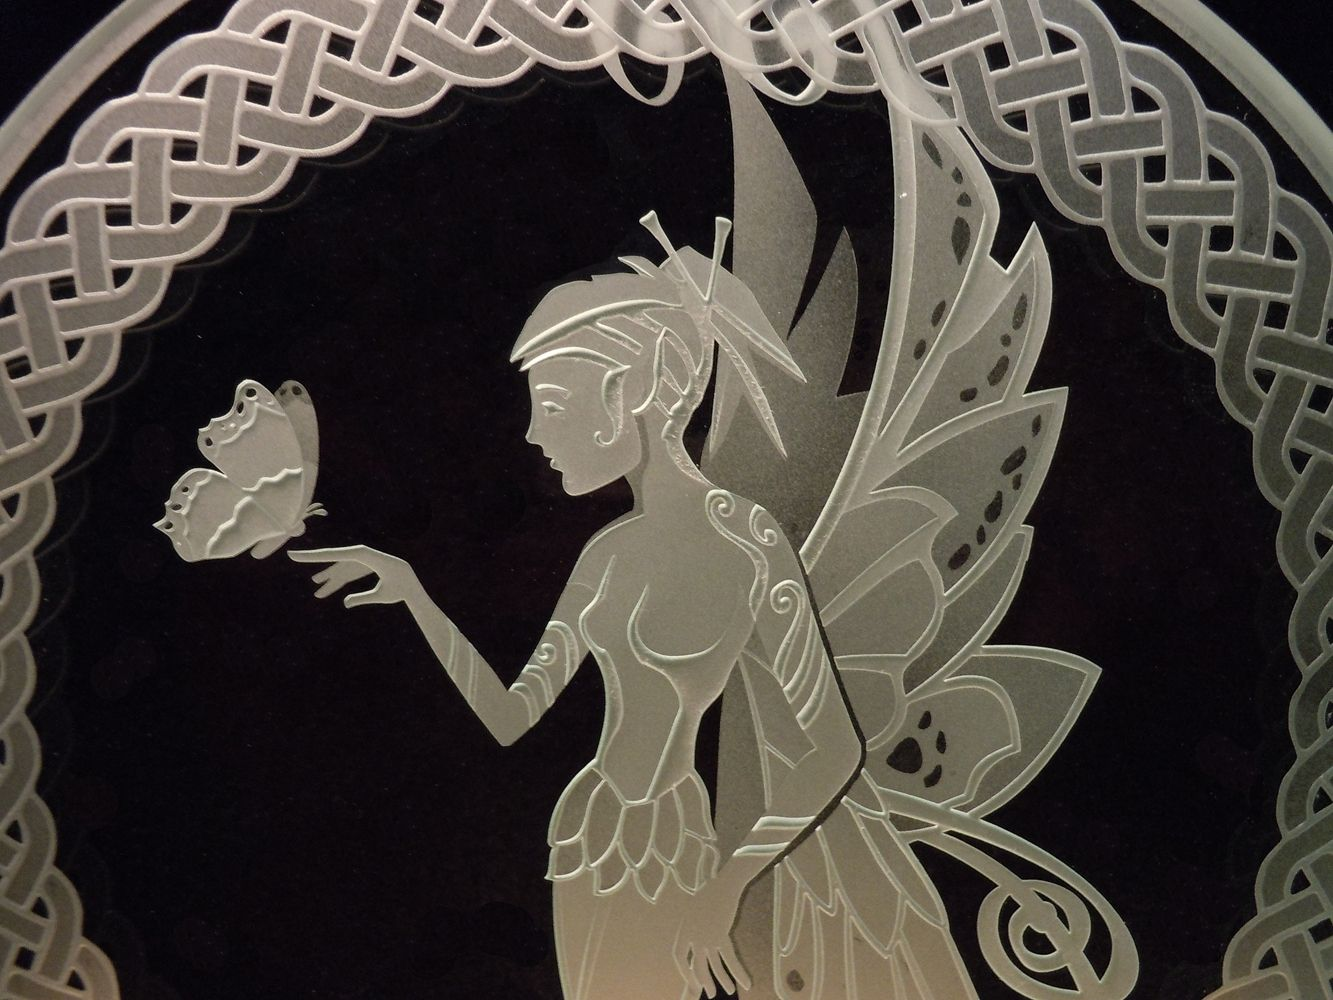 Fairy With Erfly Celtic Knotwork Etched Glass Decorative Art Tabletop Display By Brian Laughlin